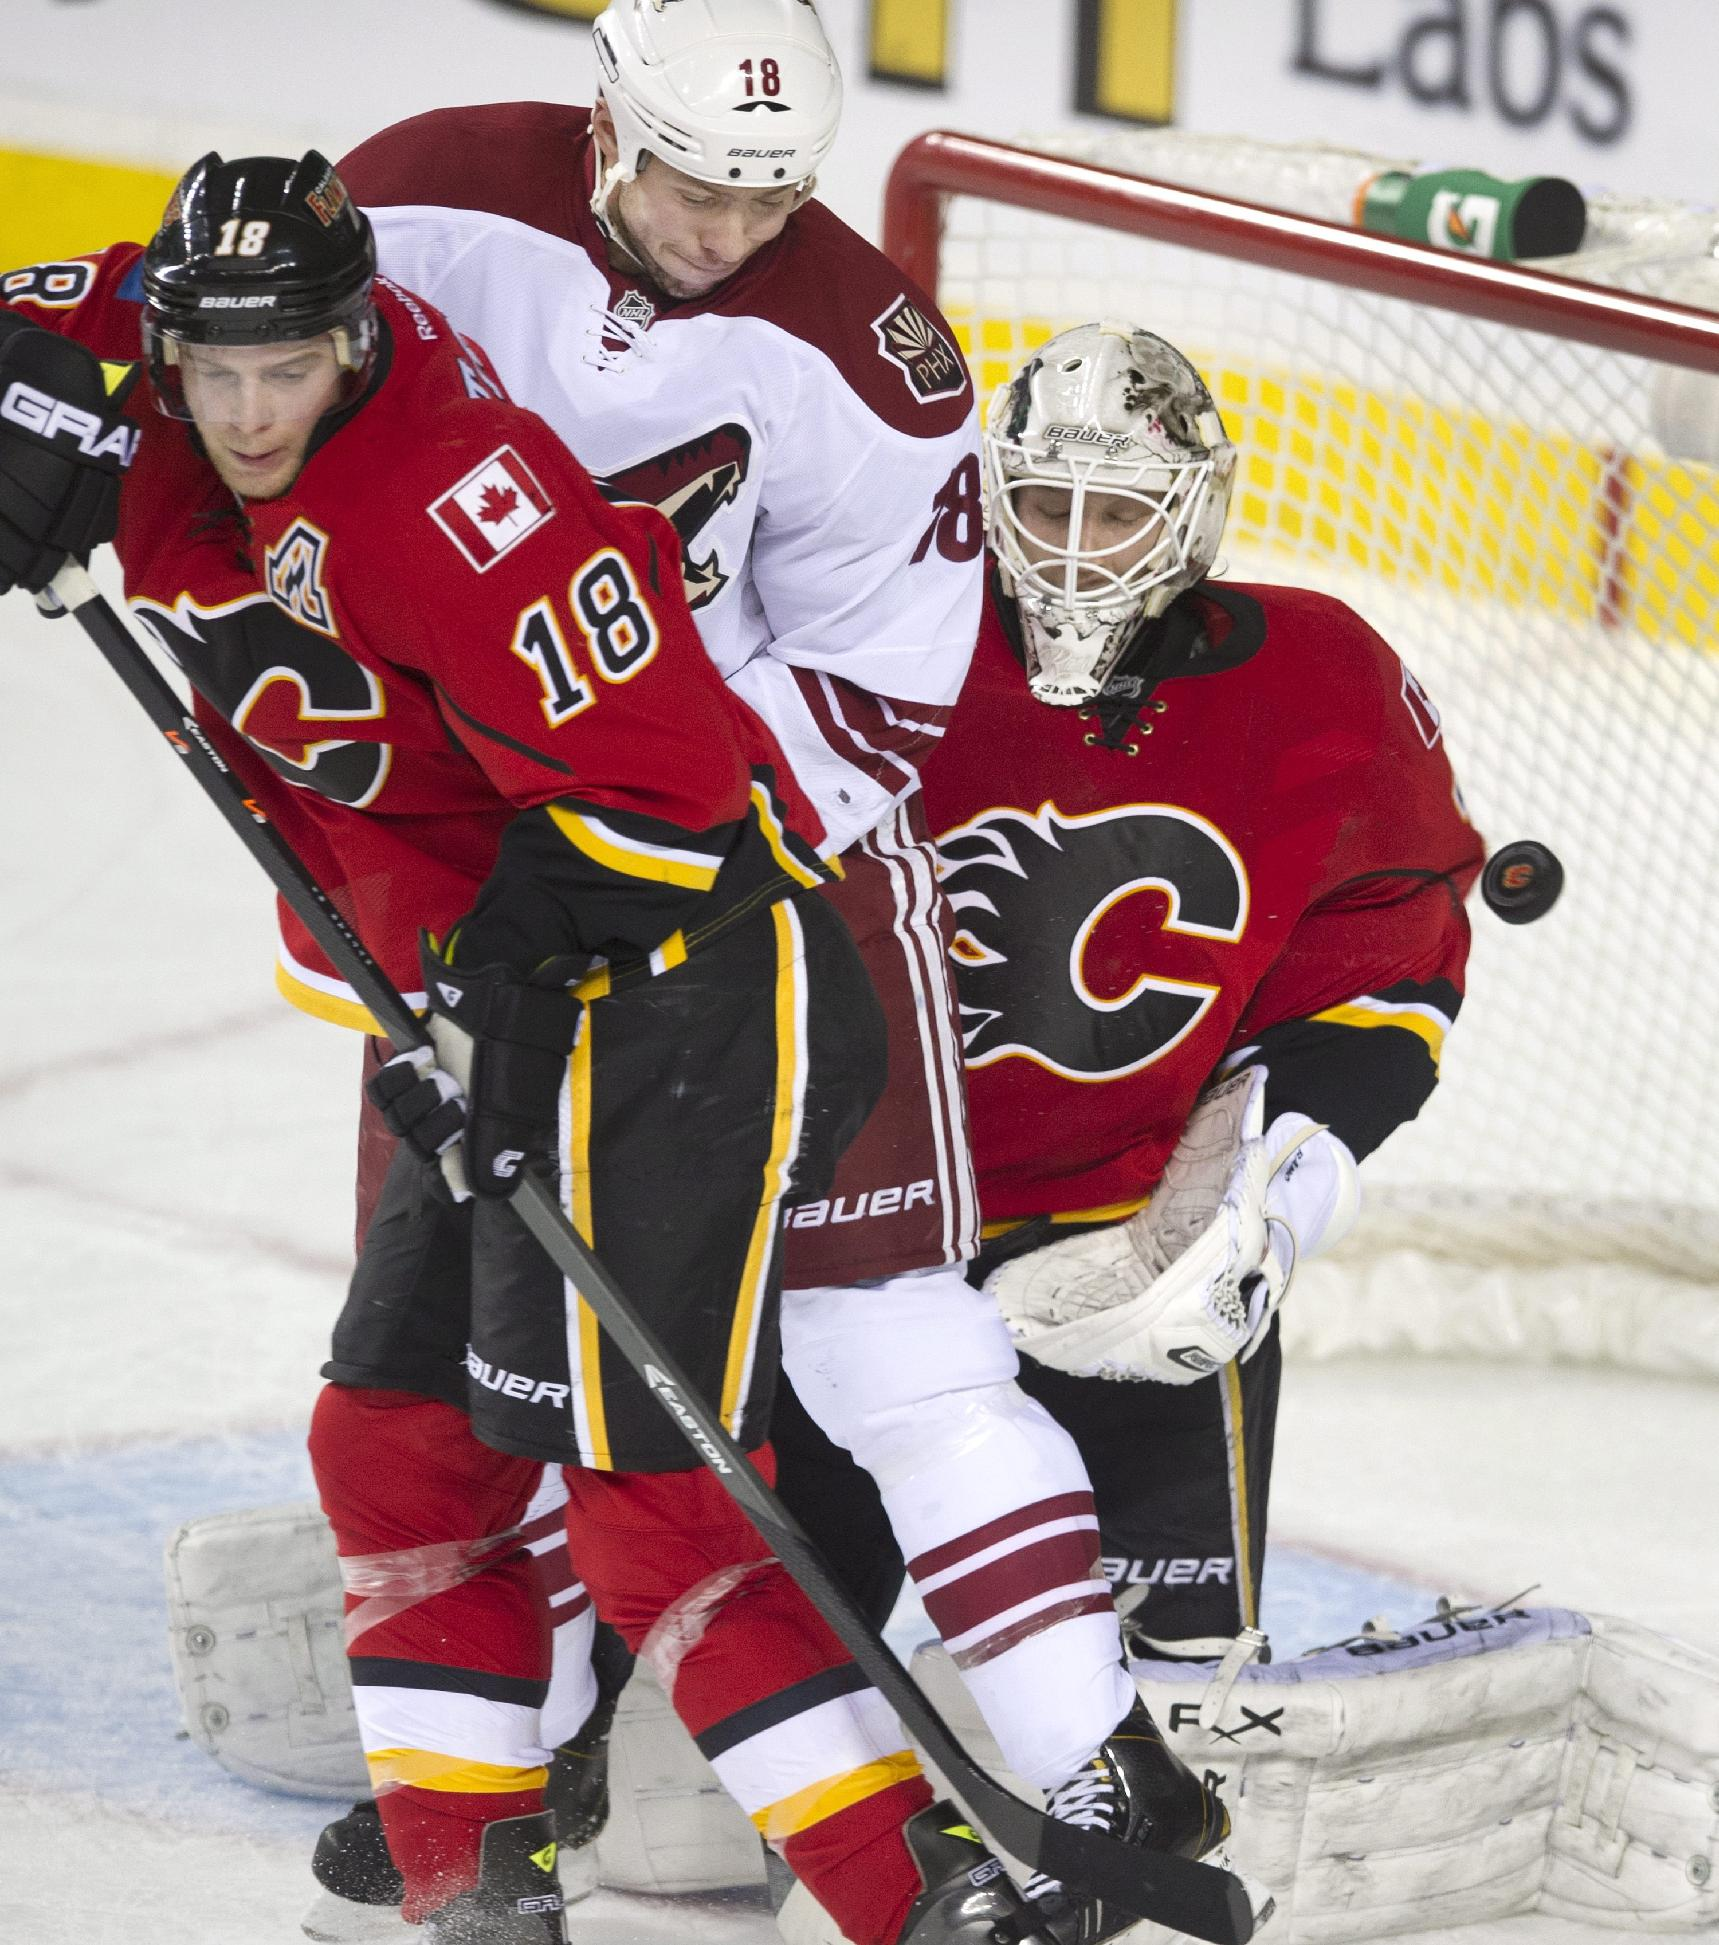 Calgary Flames' goalie, Reto Berra, right, from Finland, makes a save as Calgary's Matt Stajan, left, battles with Phoenix Coyotes' David Moss during second period NHL action Wednesday, Dec. 4, 2013 in Calgary, Alberta